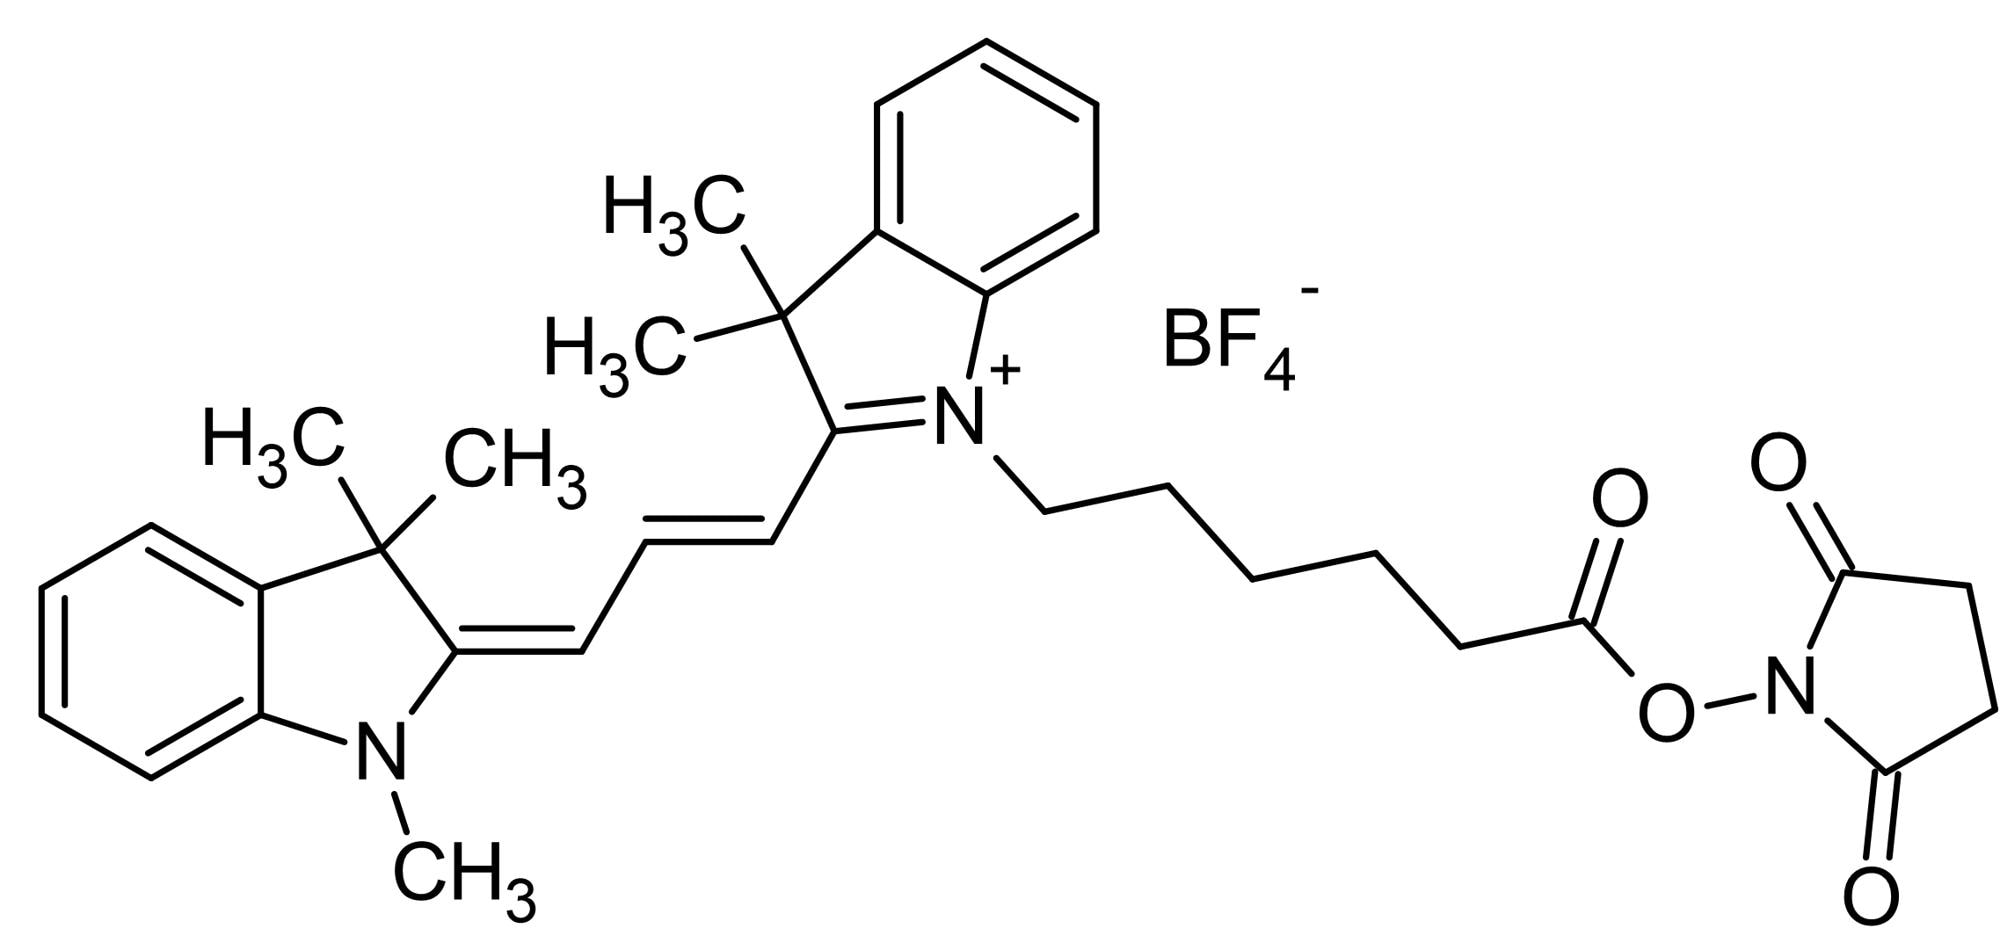 Chemical Structure - Cyanine3 NHS ester, Yellow emitting fluorescent dye (ab146452)